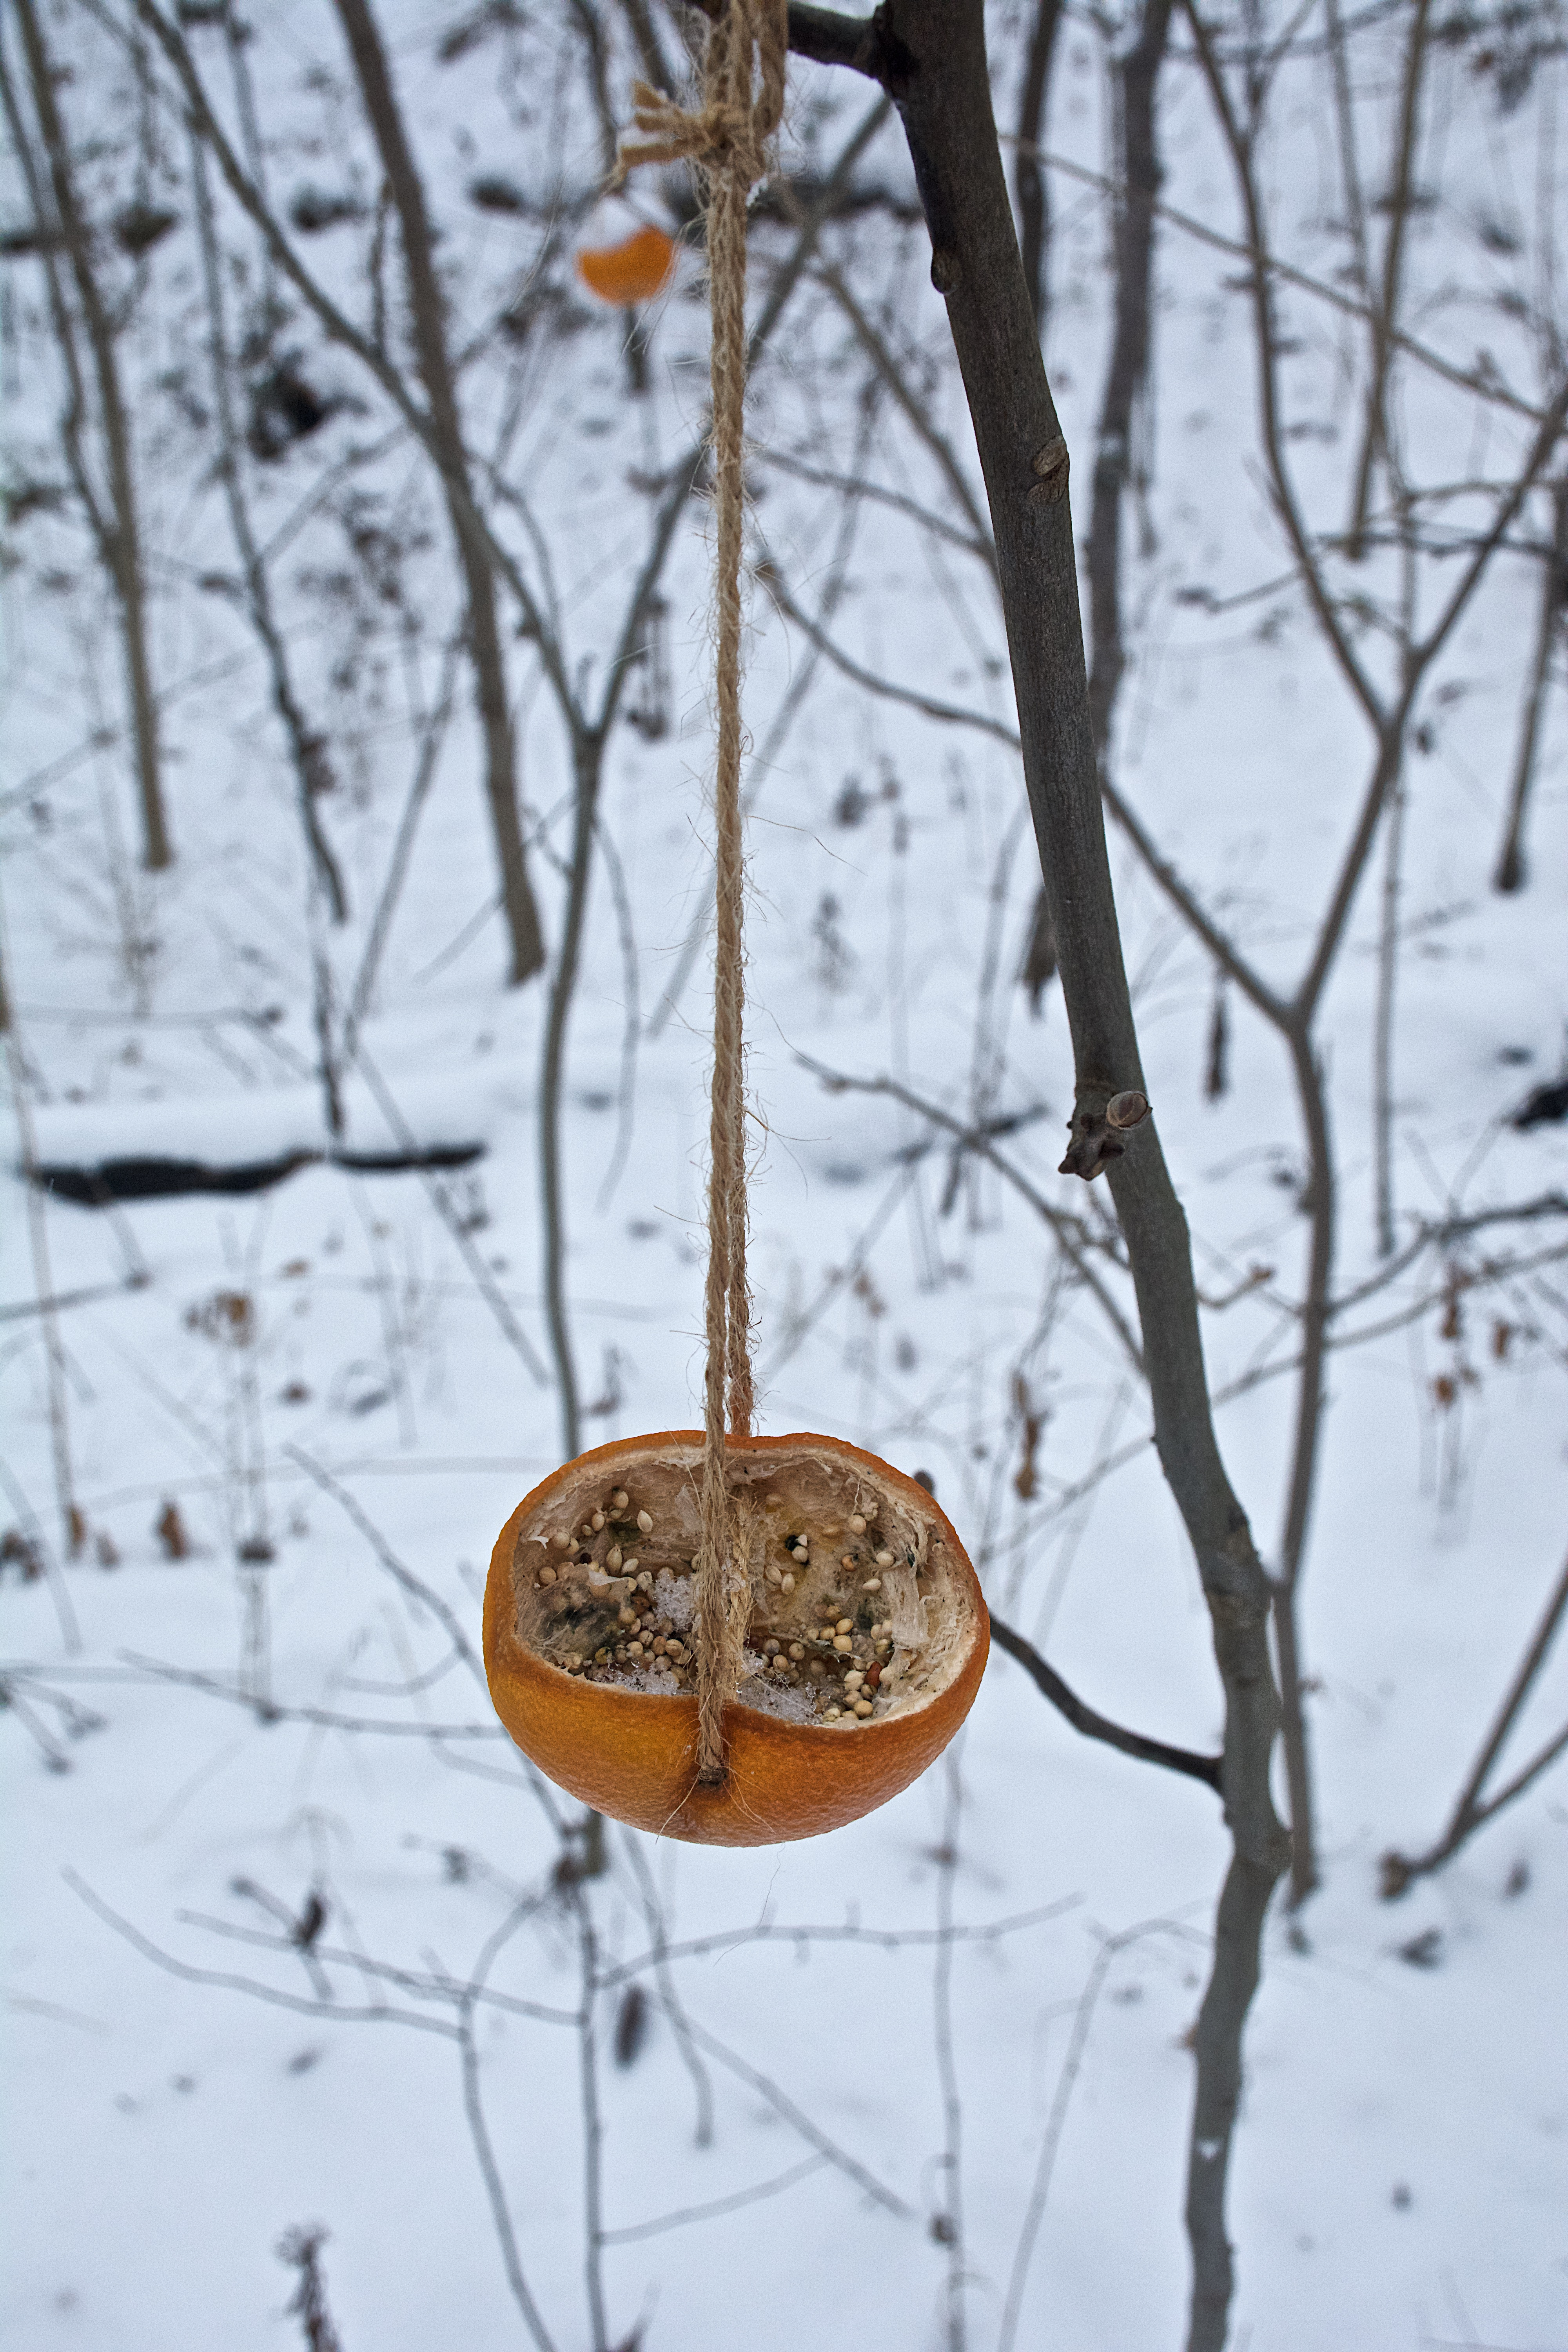 A hollowed out orange peel hangs from a tree amidst a snowy backdrop.